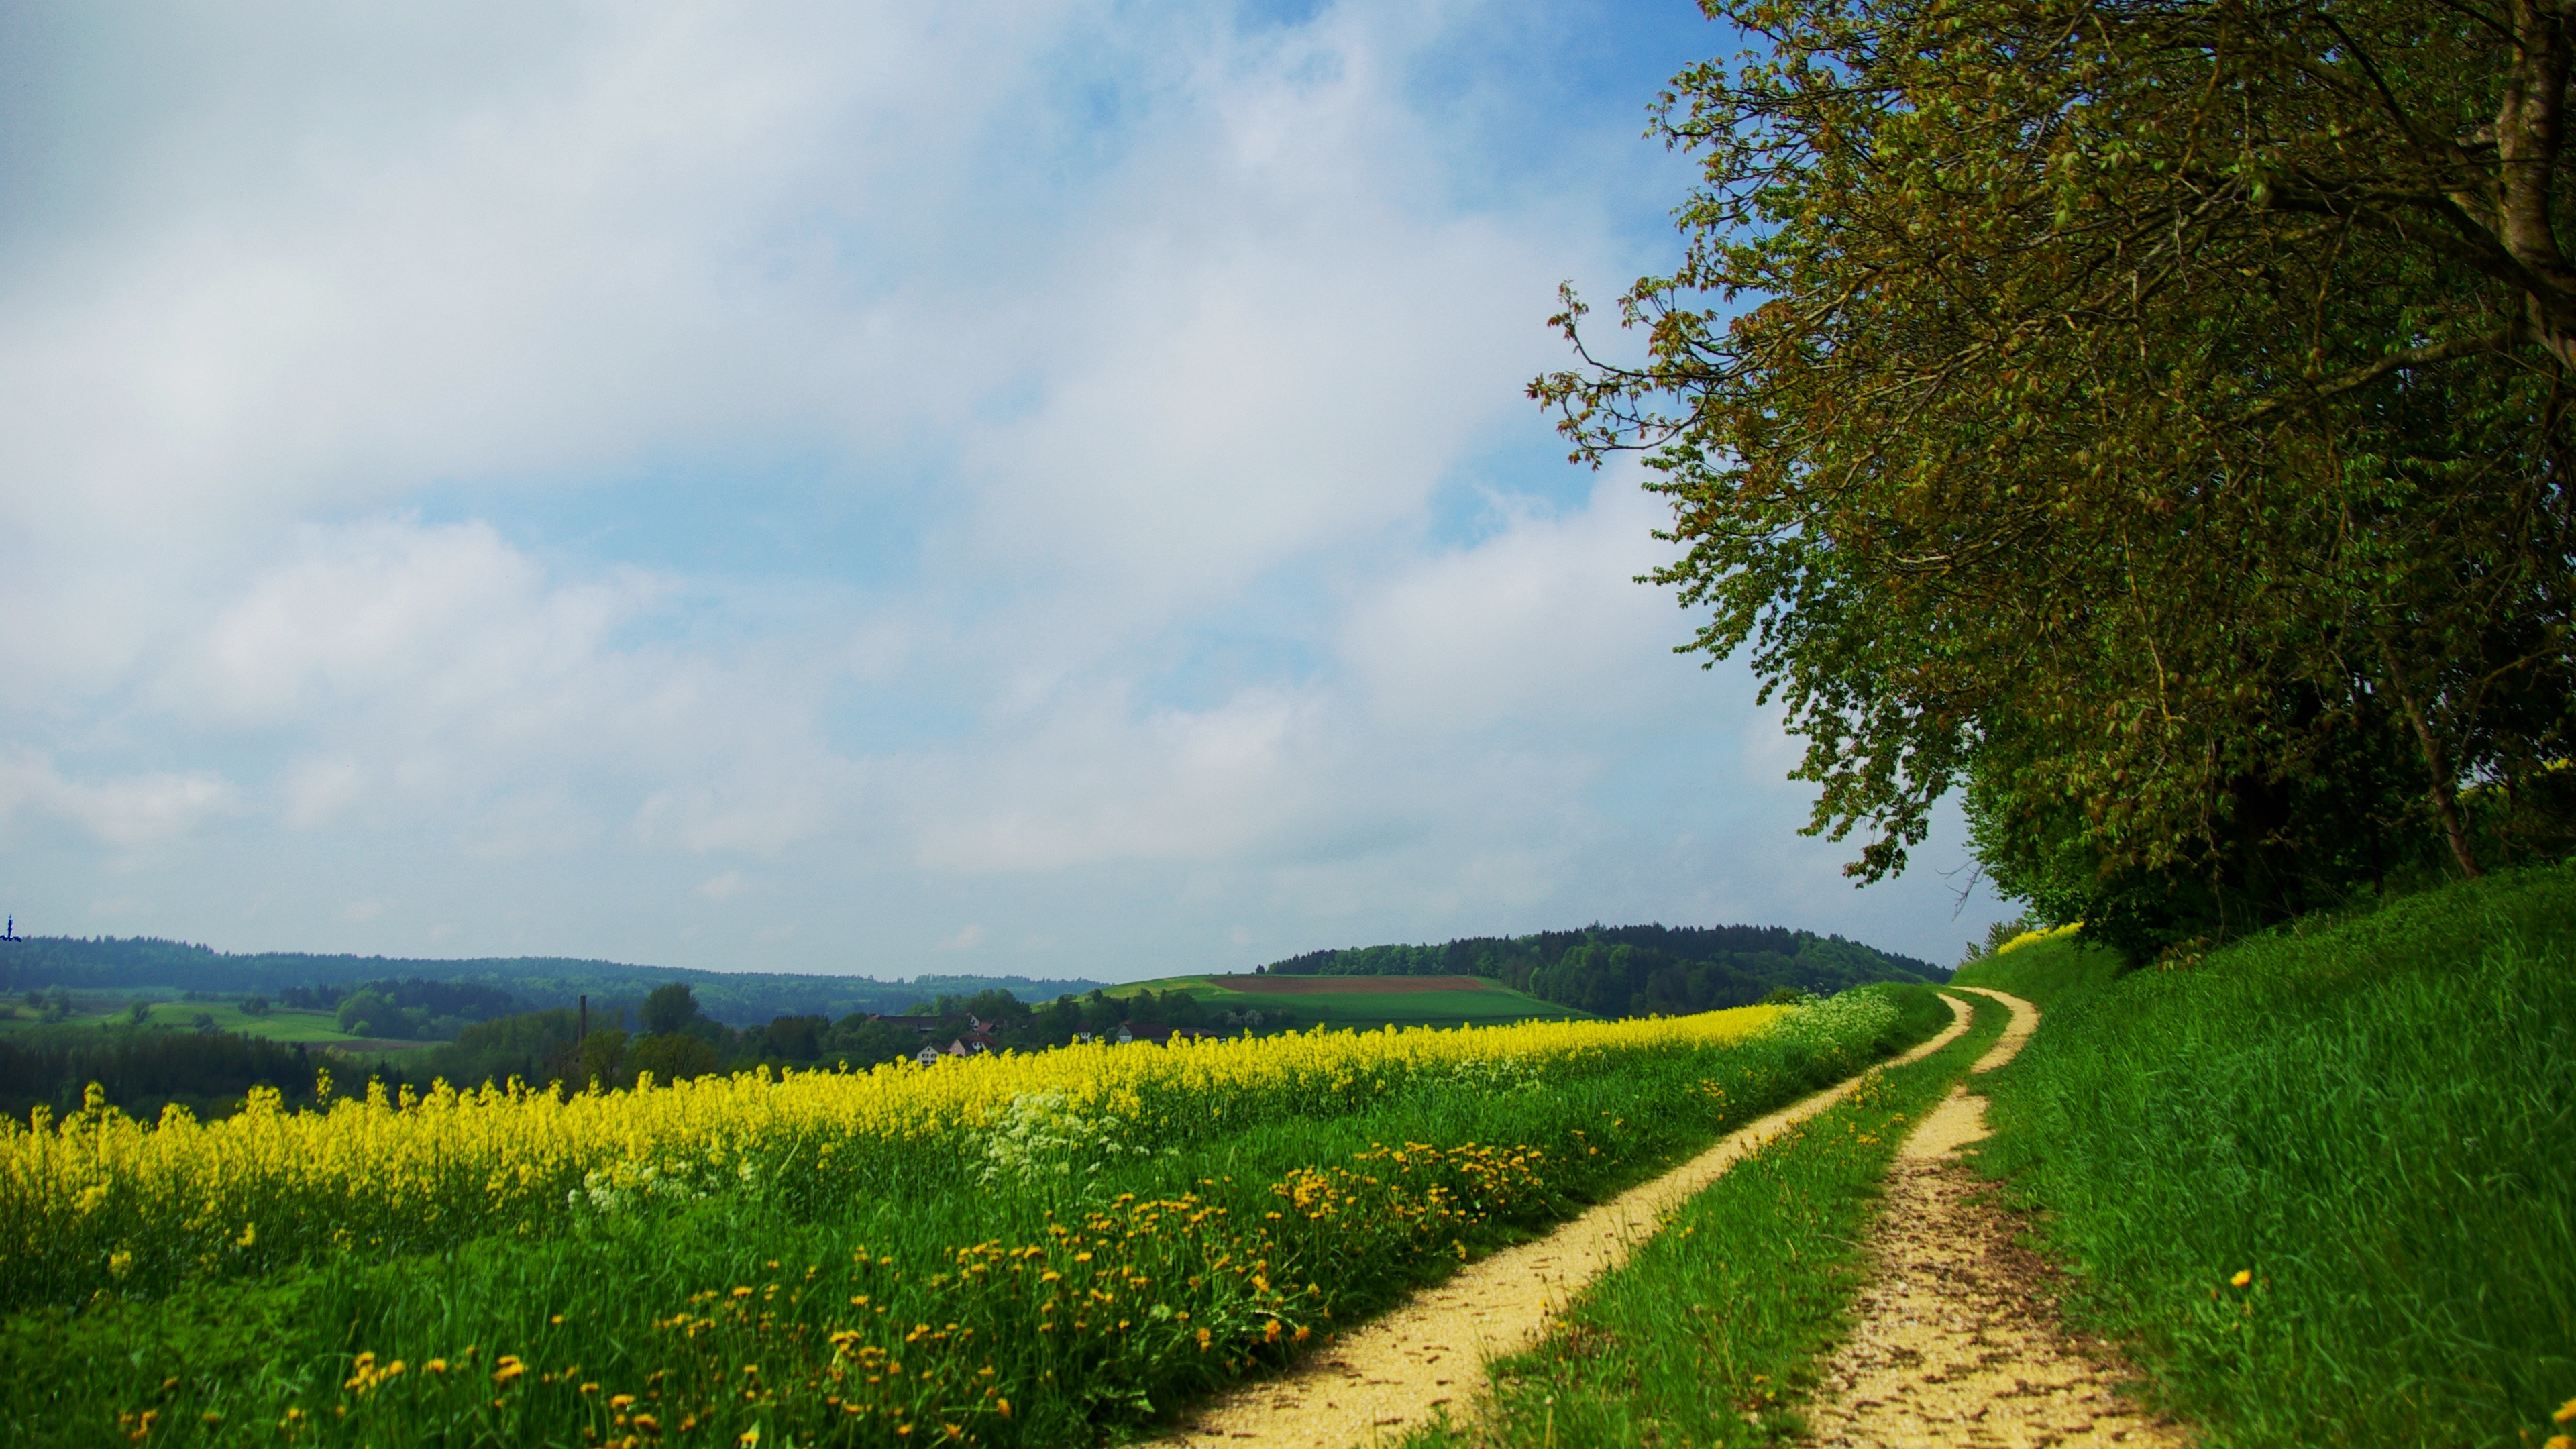 road country summer flowers yellow day glade 4k 1541116120 - road, country, summer, flowers, yellow, day, glade 4k - Summer, Road, Country